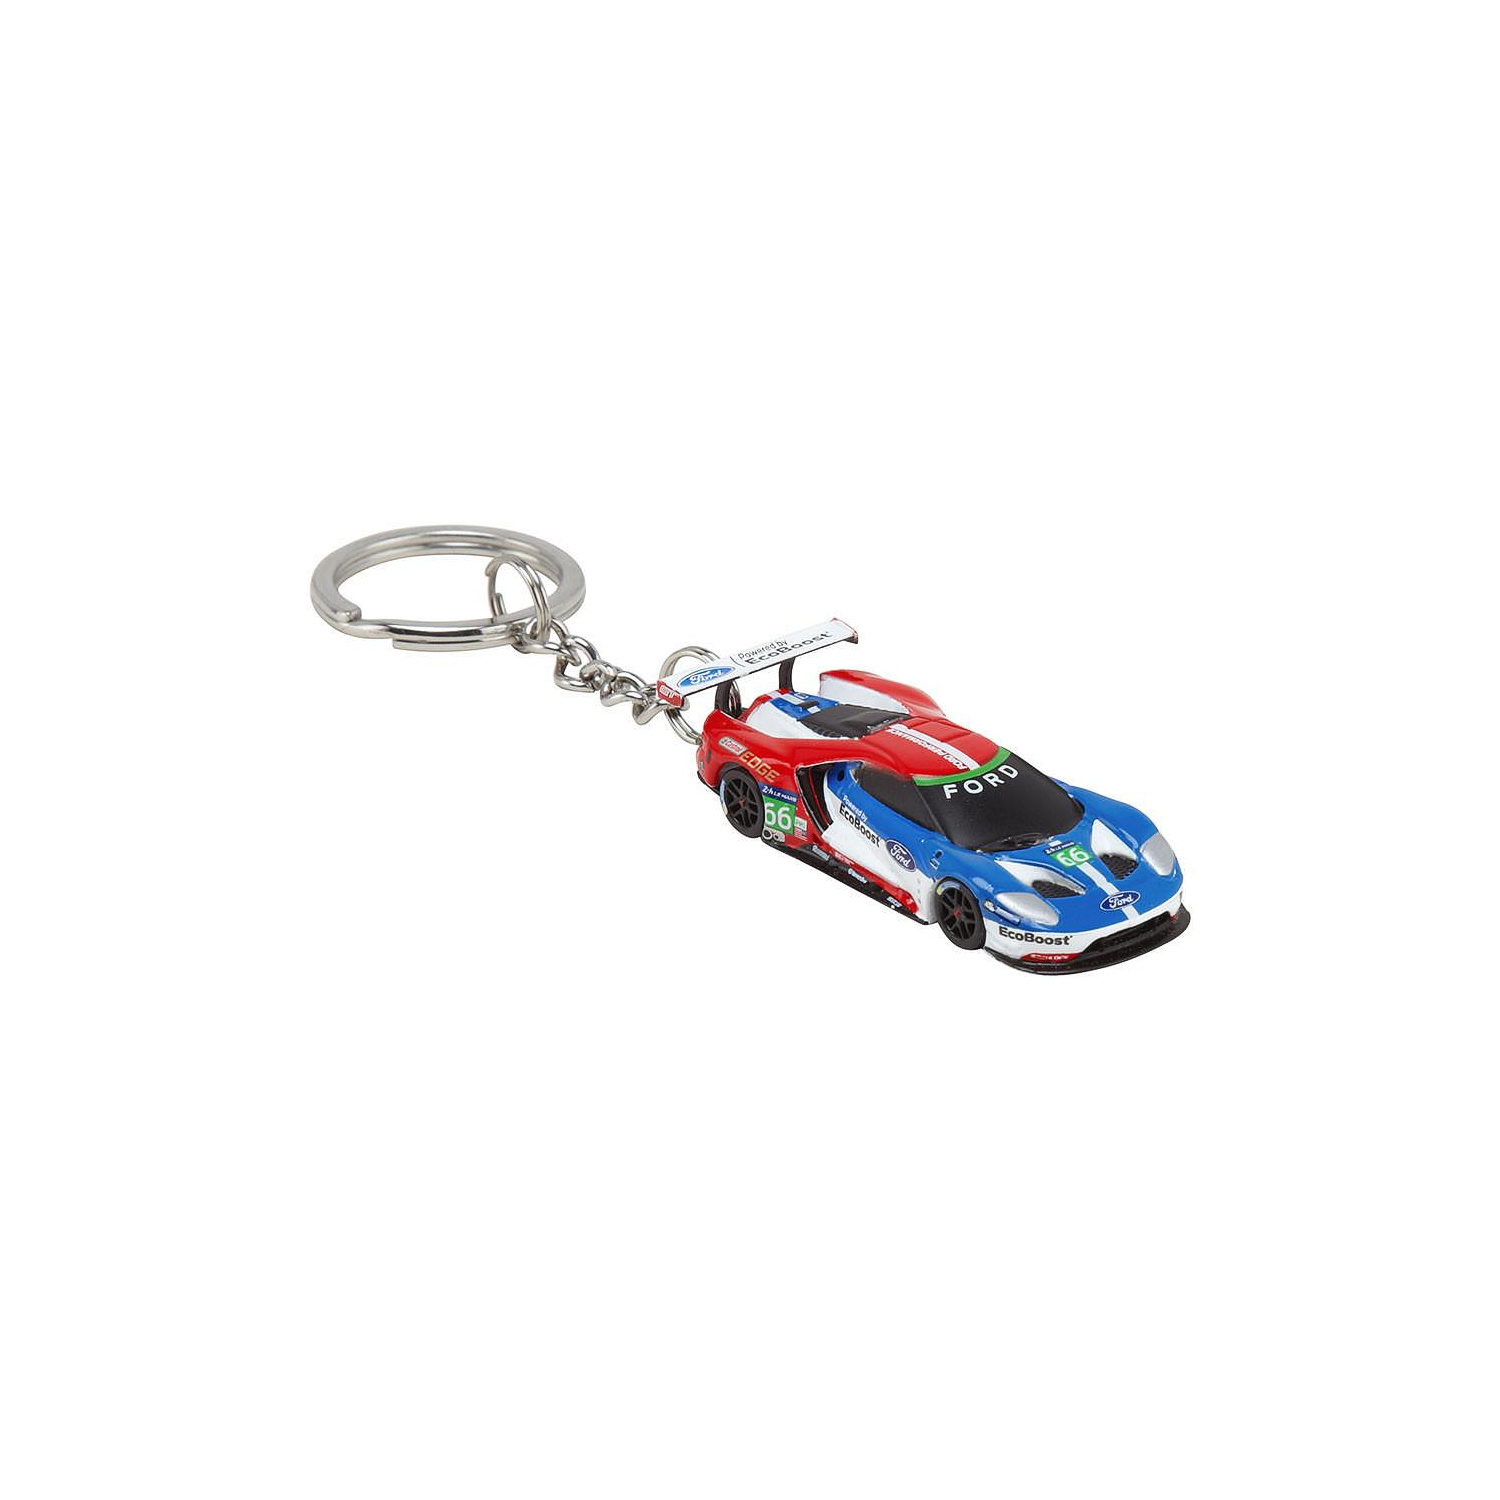 Ford Performance Car Keyring Accesories Keyrings Shop By Team Racing Teams Ford Performance F1store Net